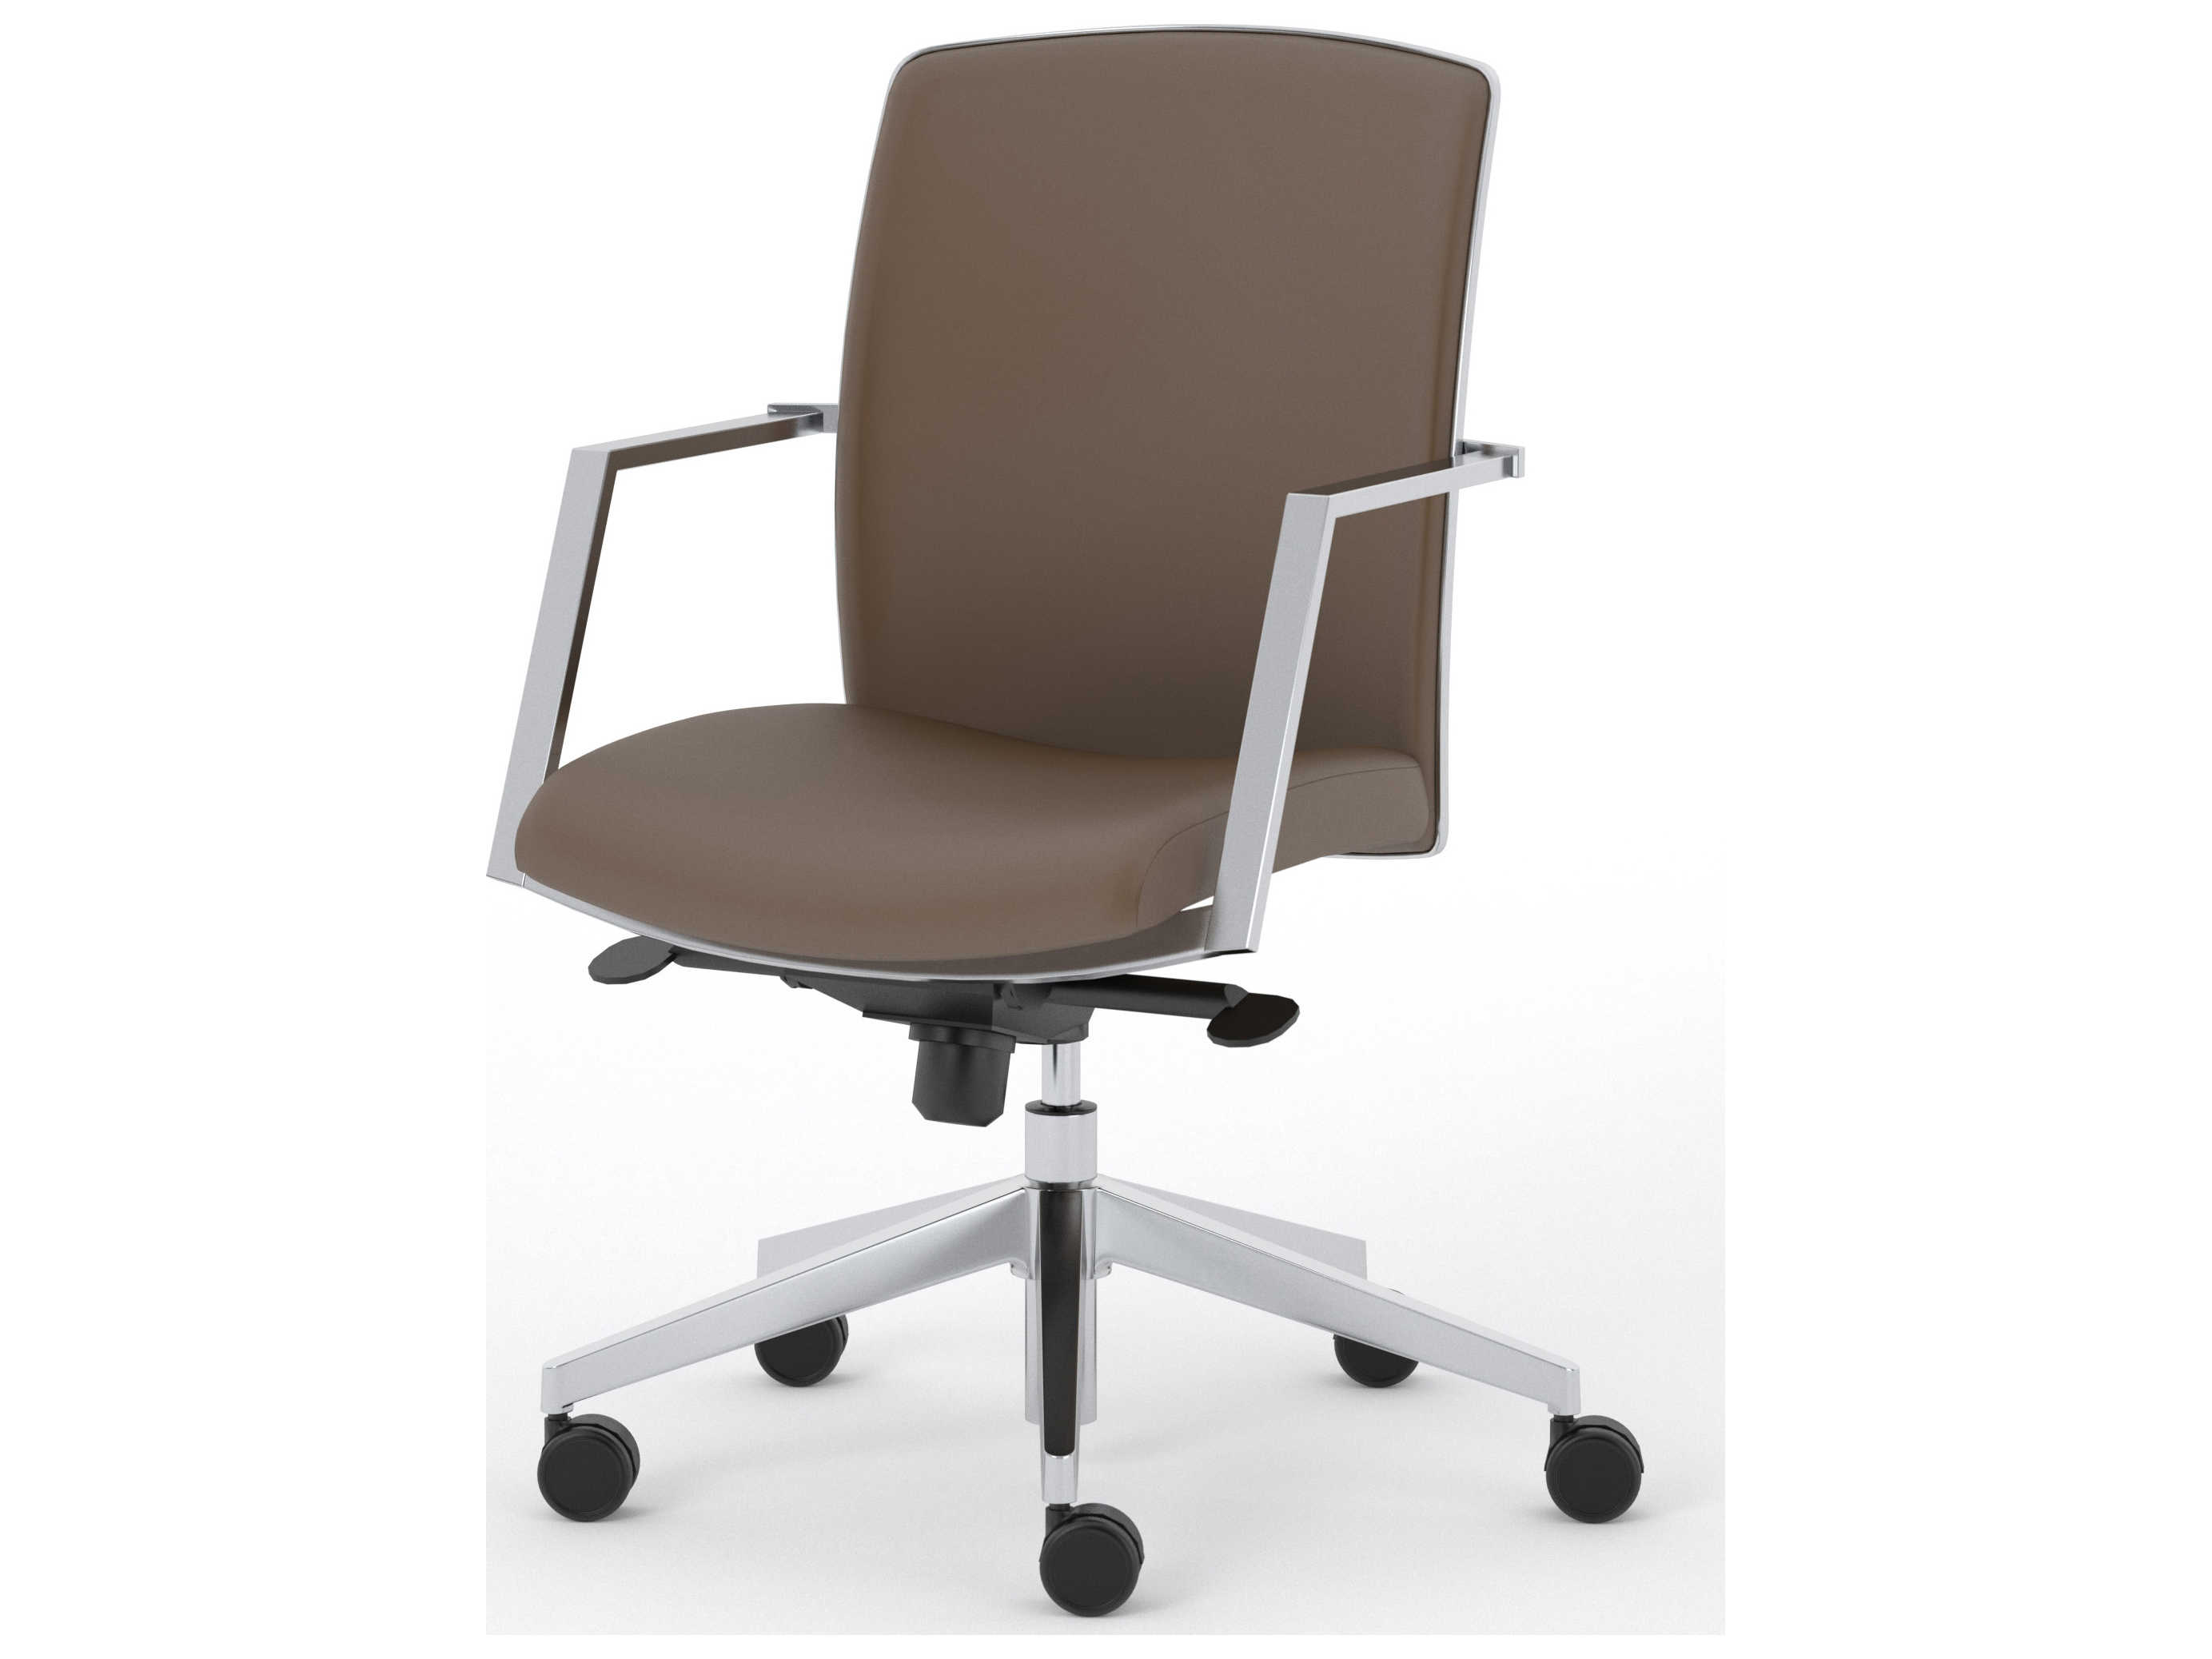 Dauphin Chairs Dauphin Highway Swivel Tilt Desk Chair